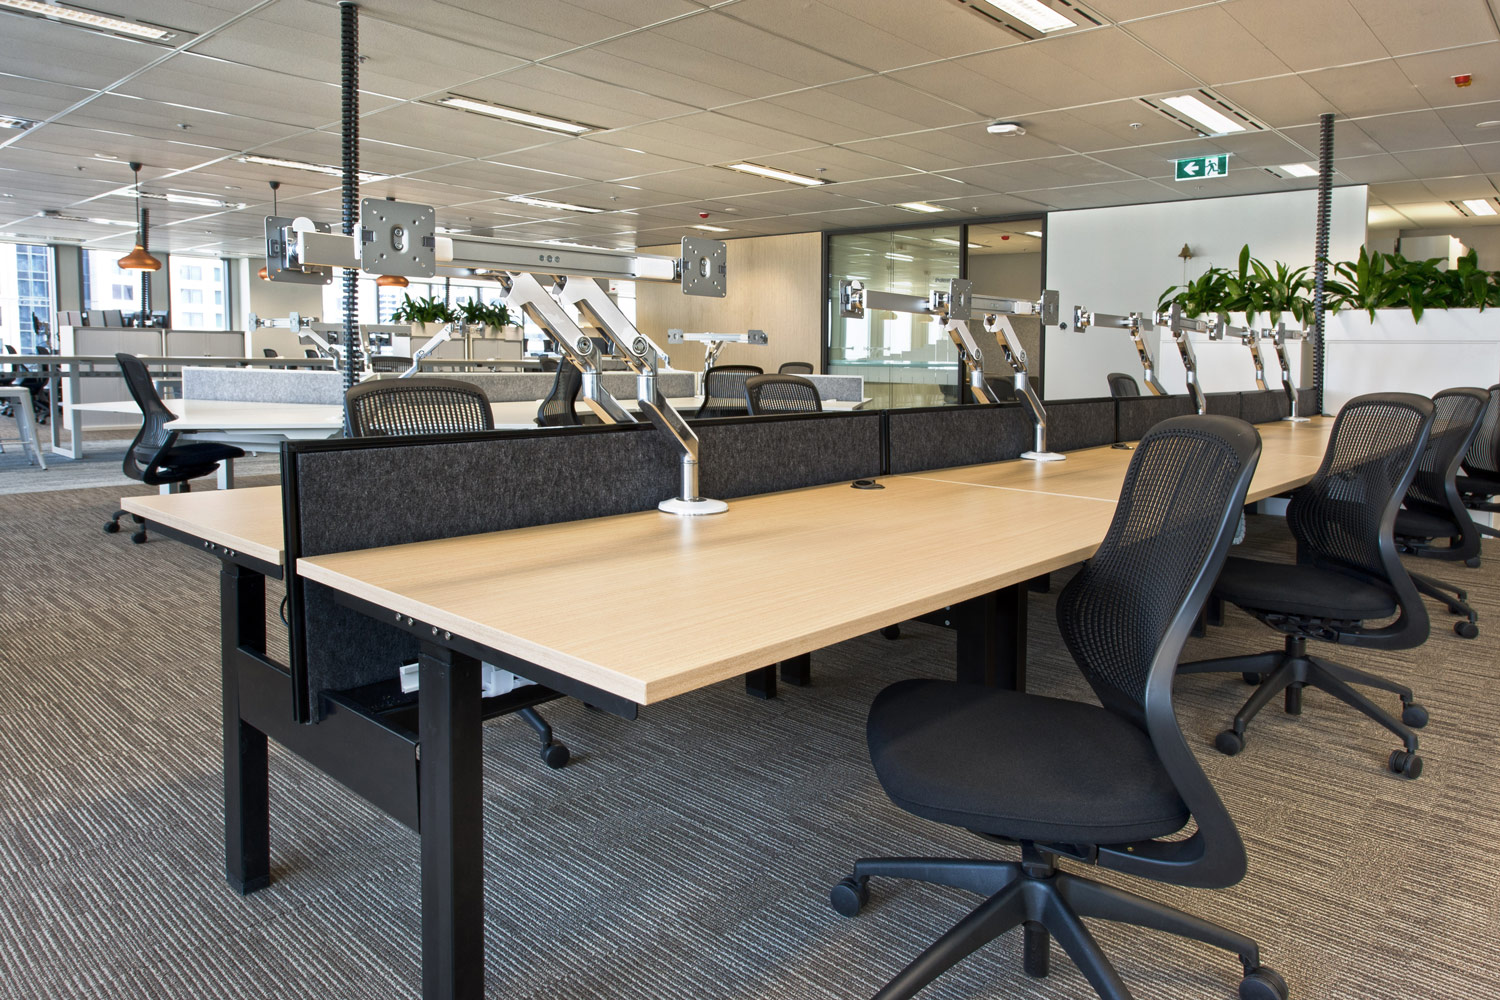 Actif workstations with electric height adjustability.